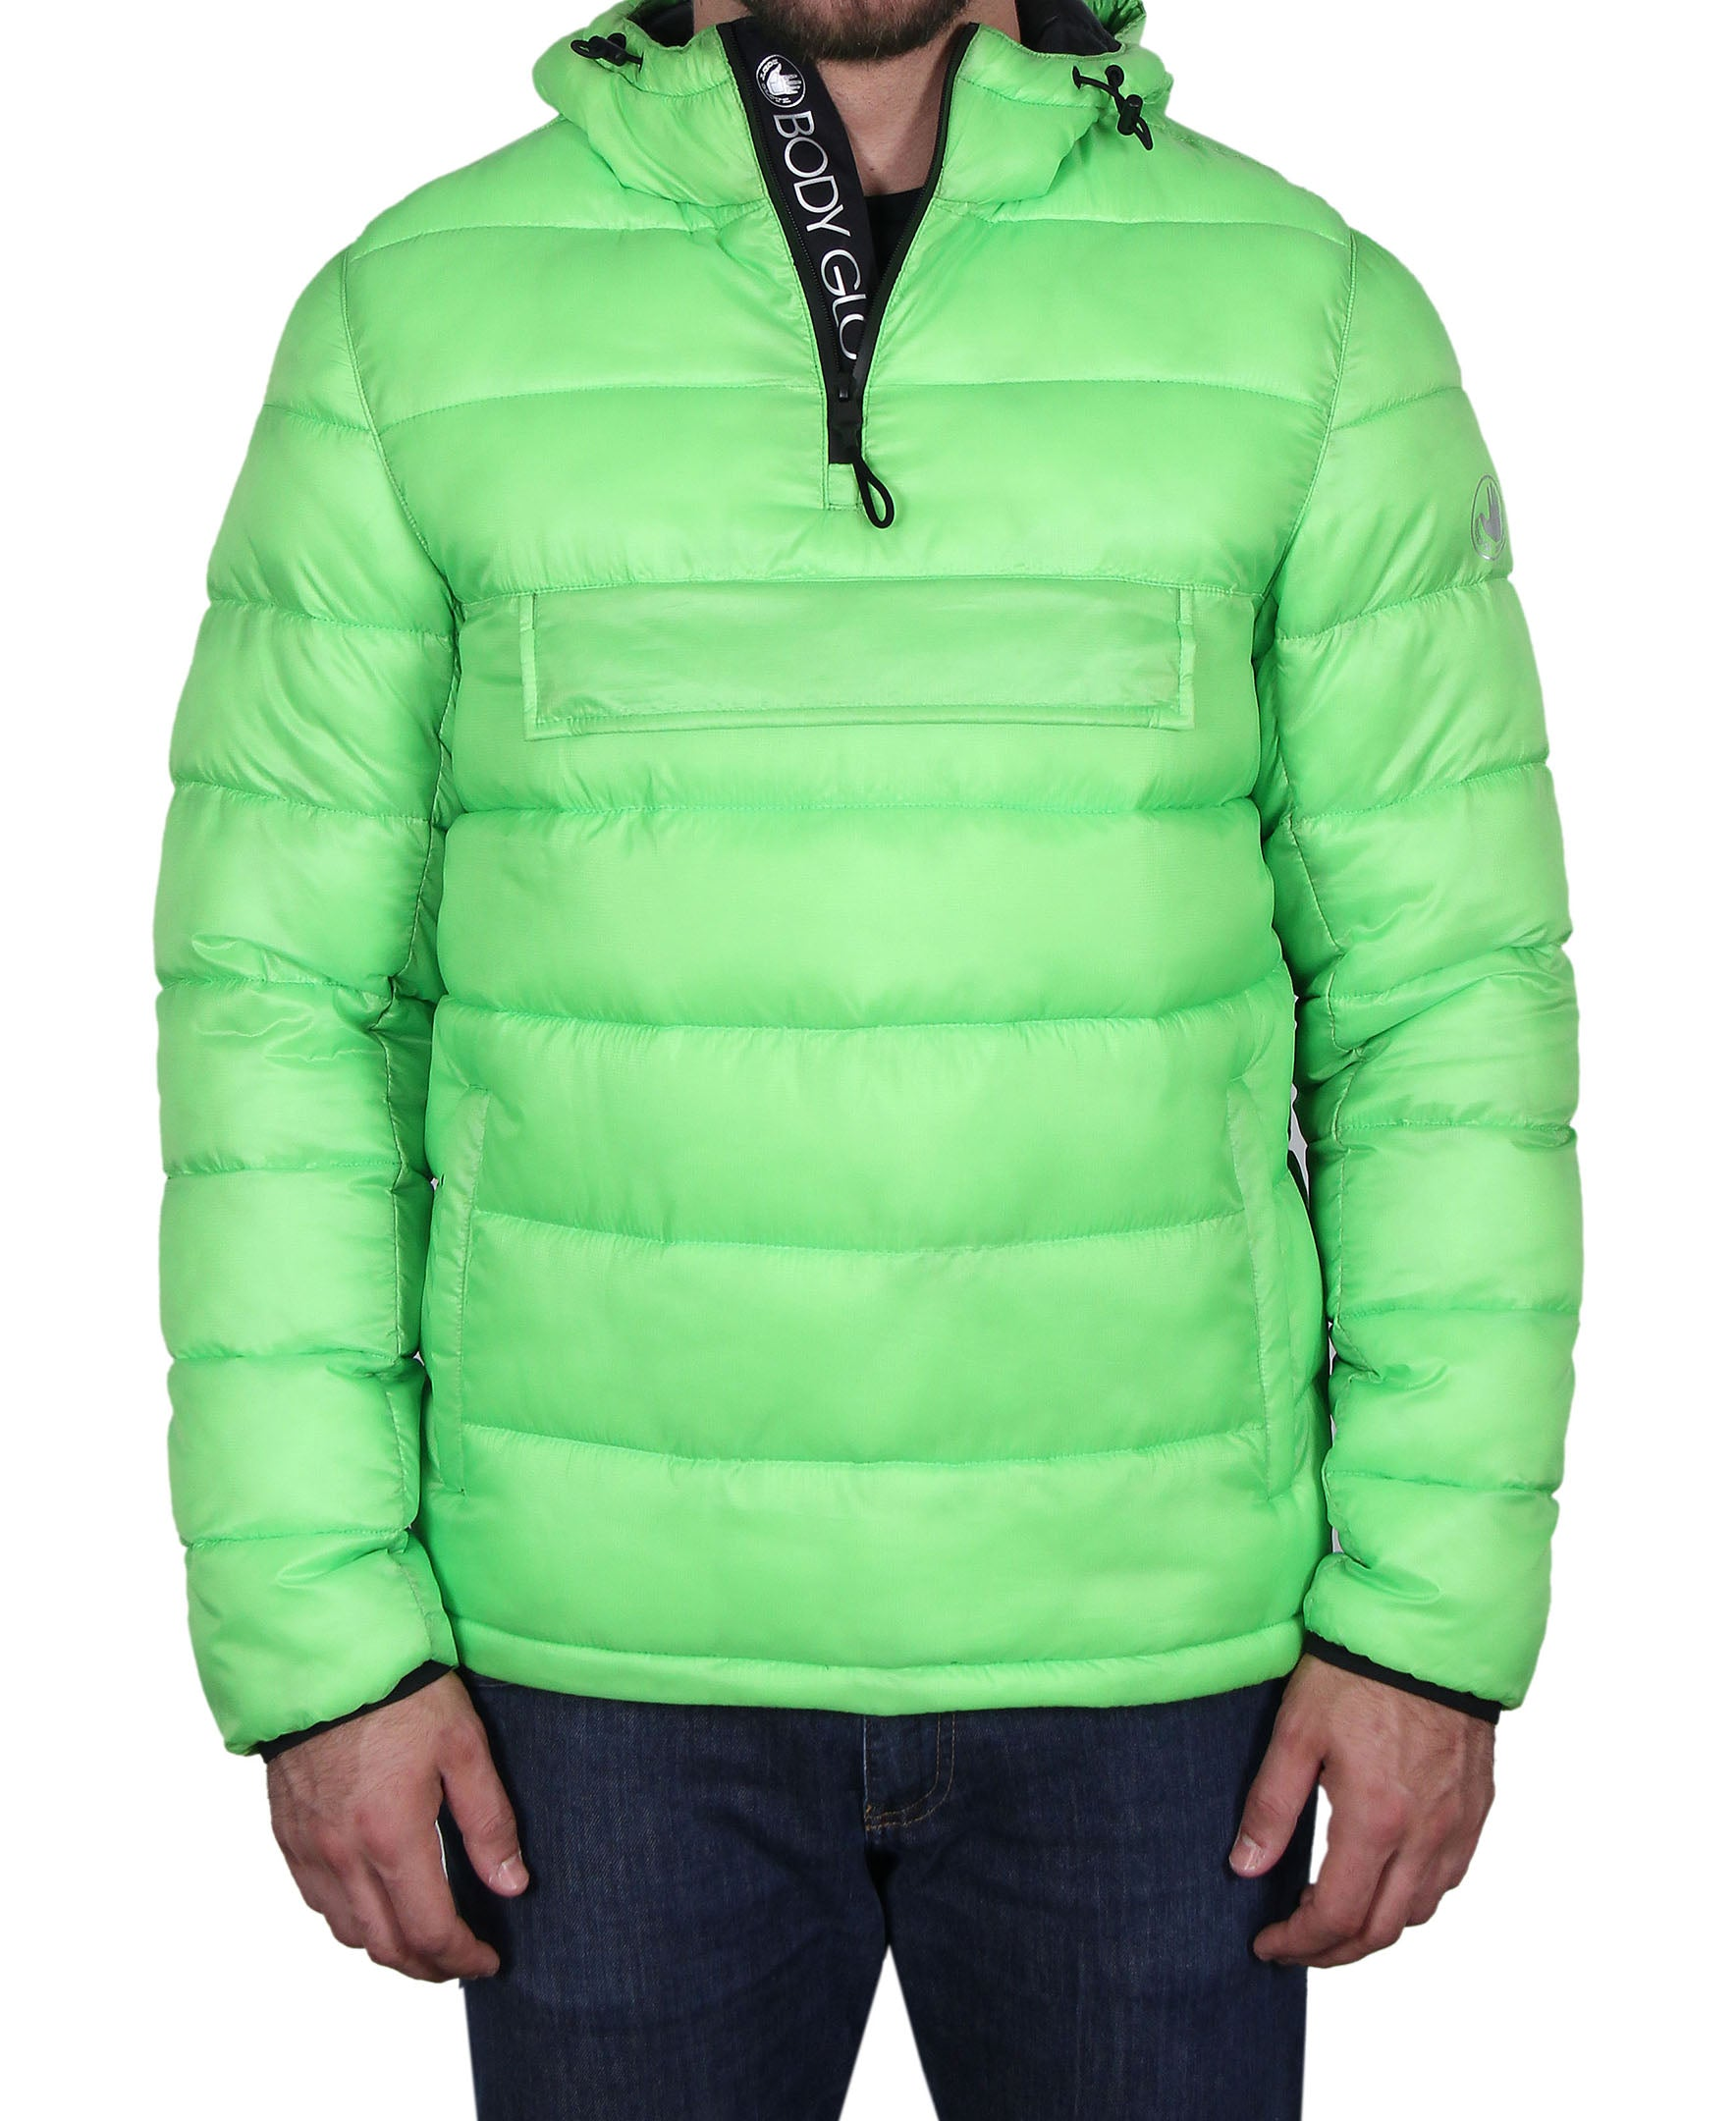 Men's Quilted Hooded Pullover - Green